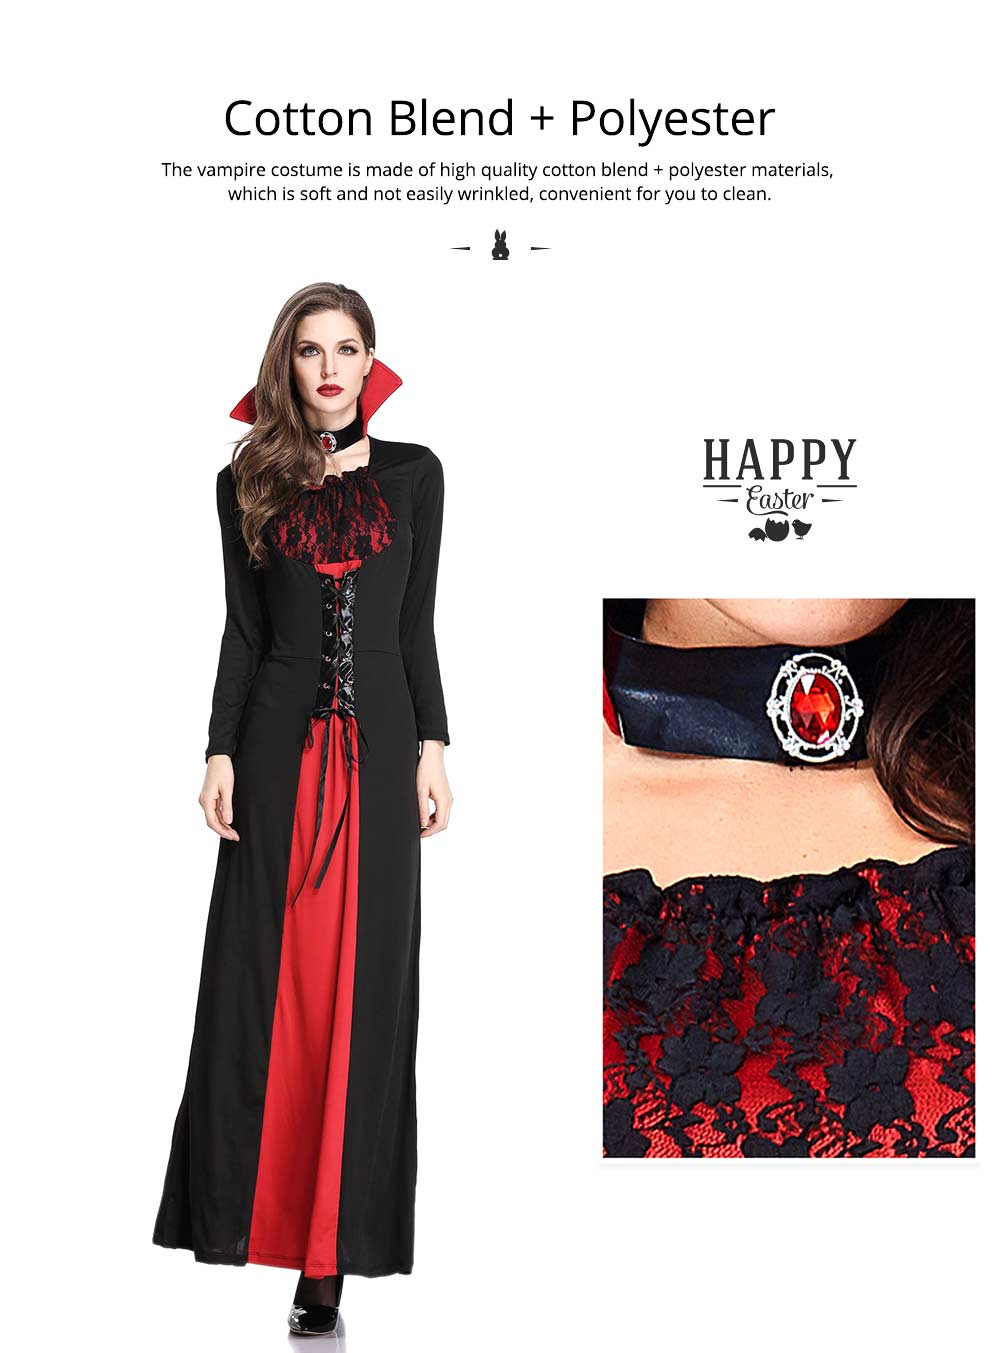 Vampire Costume, Queen Dress for Halloween Easter Christmas, Halloween Costume for Women Adult Cosplay Dress Role Playing Costume 1